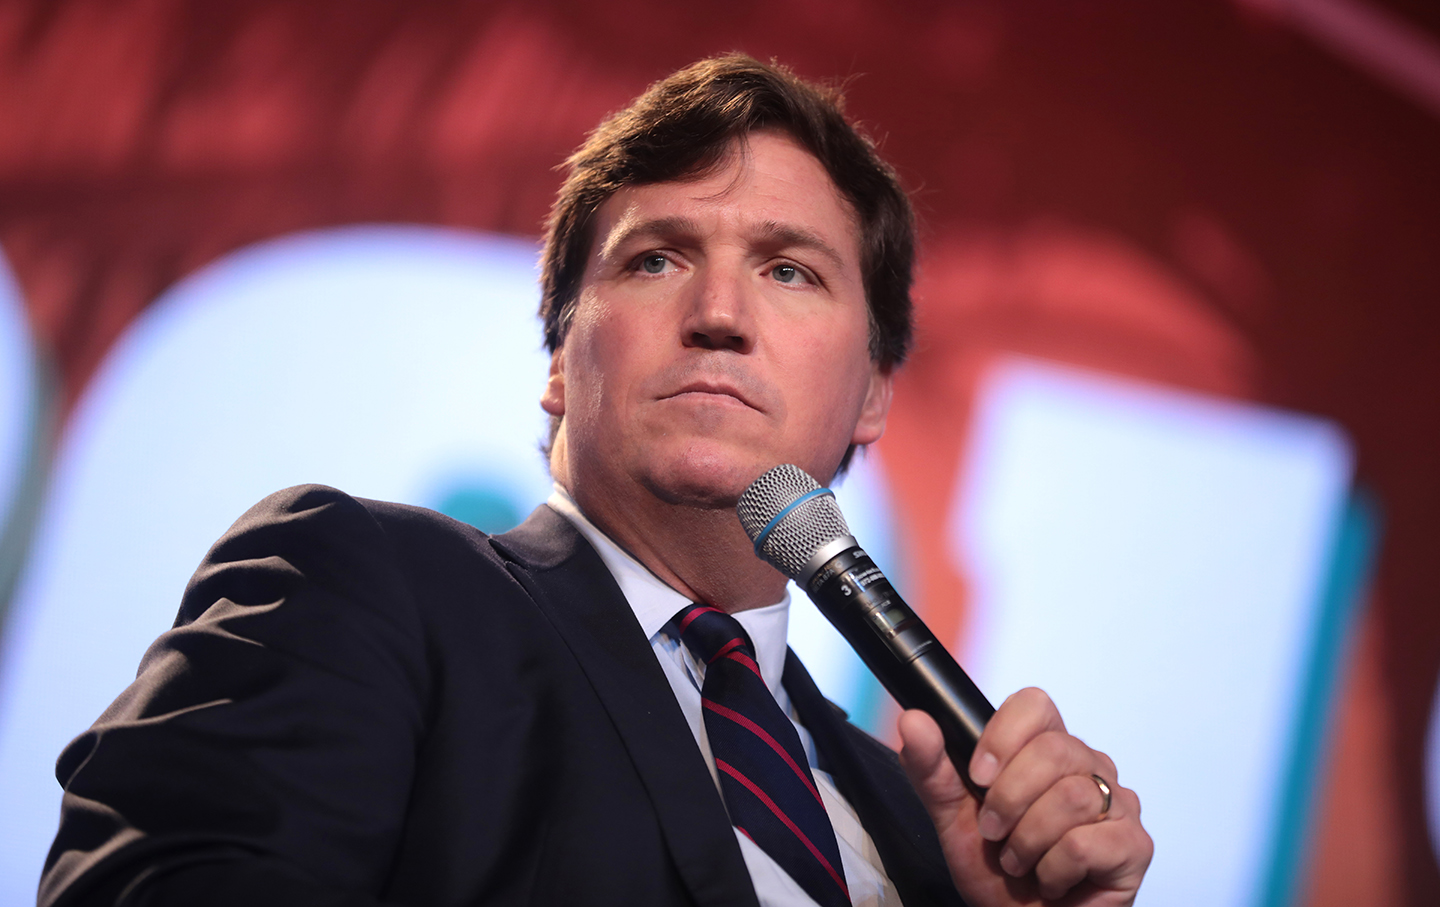 Tucker Carlson the Rape Apologist tucker carlson the rape apologist Tucker Carlson scandalous scandal pedophiles fox crime age of consent  society culture politics philosophy news